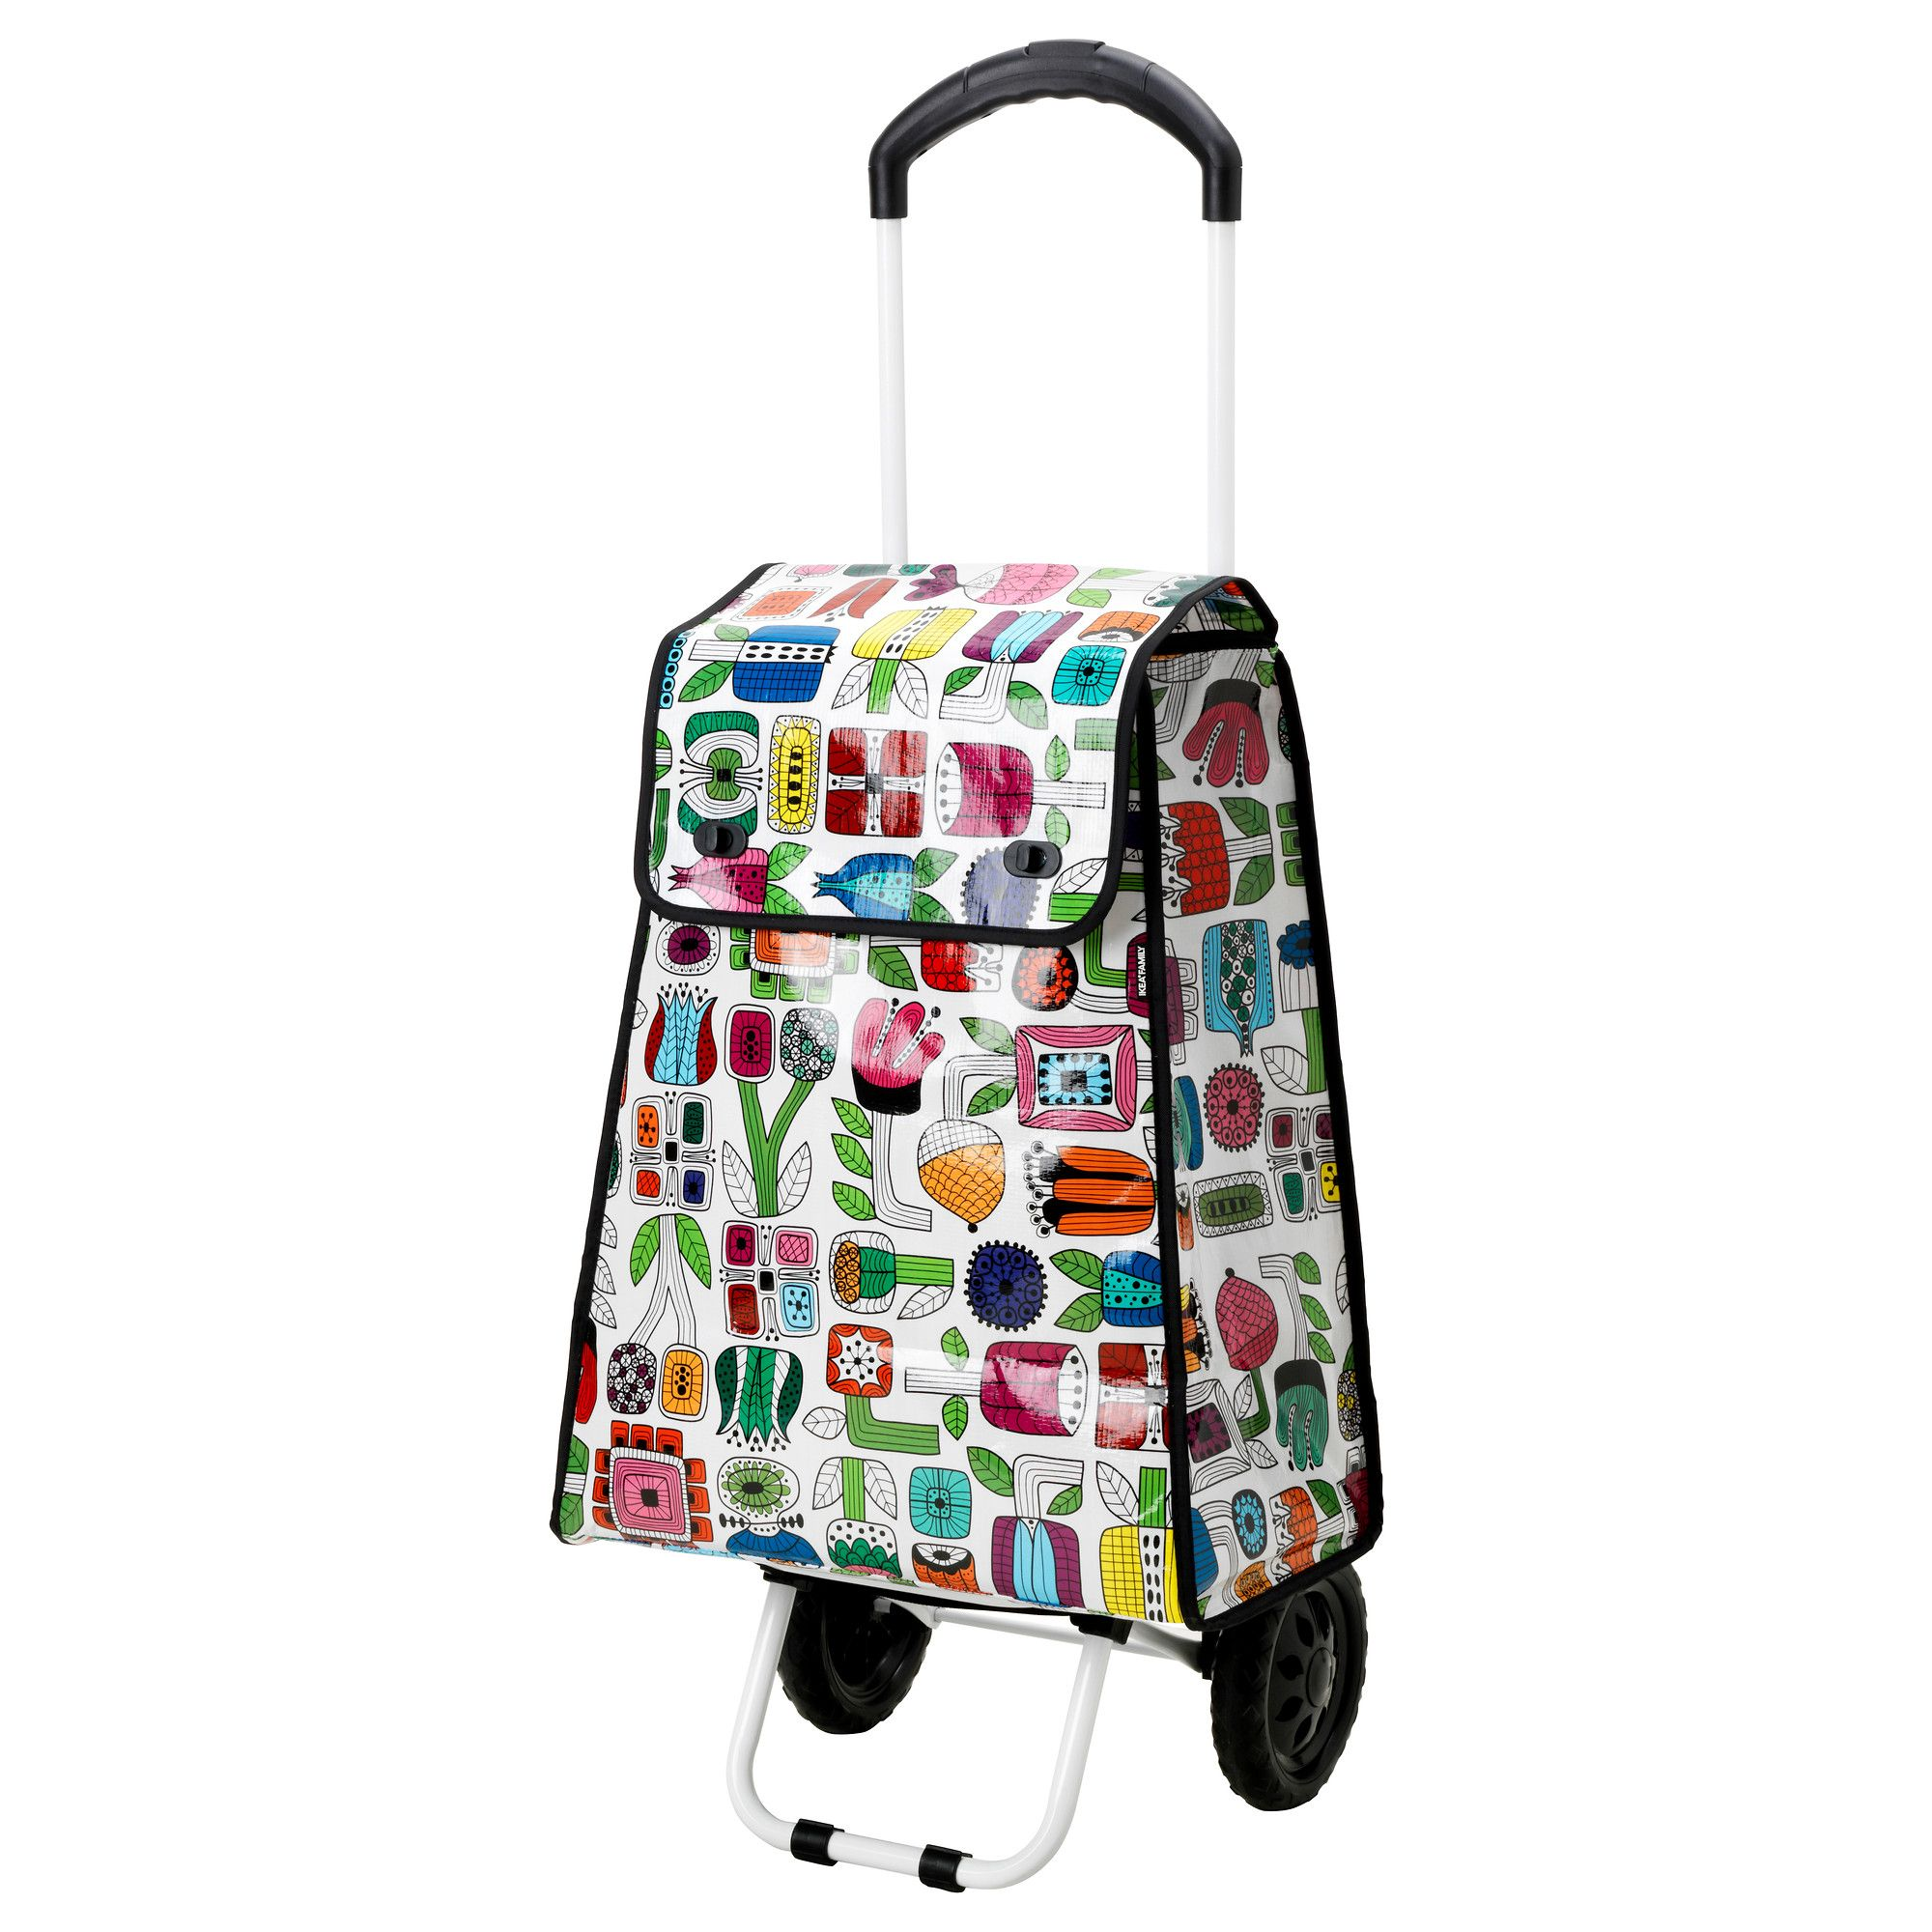 PRYDLIG Shopping Bag With Wheels IKEA Nesting Things